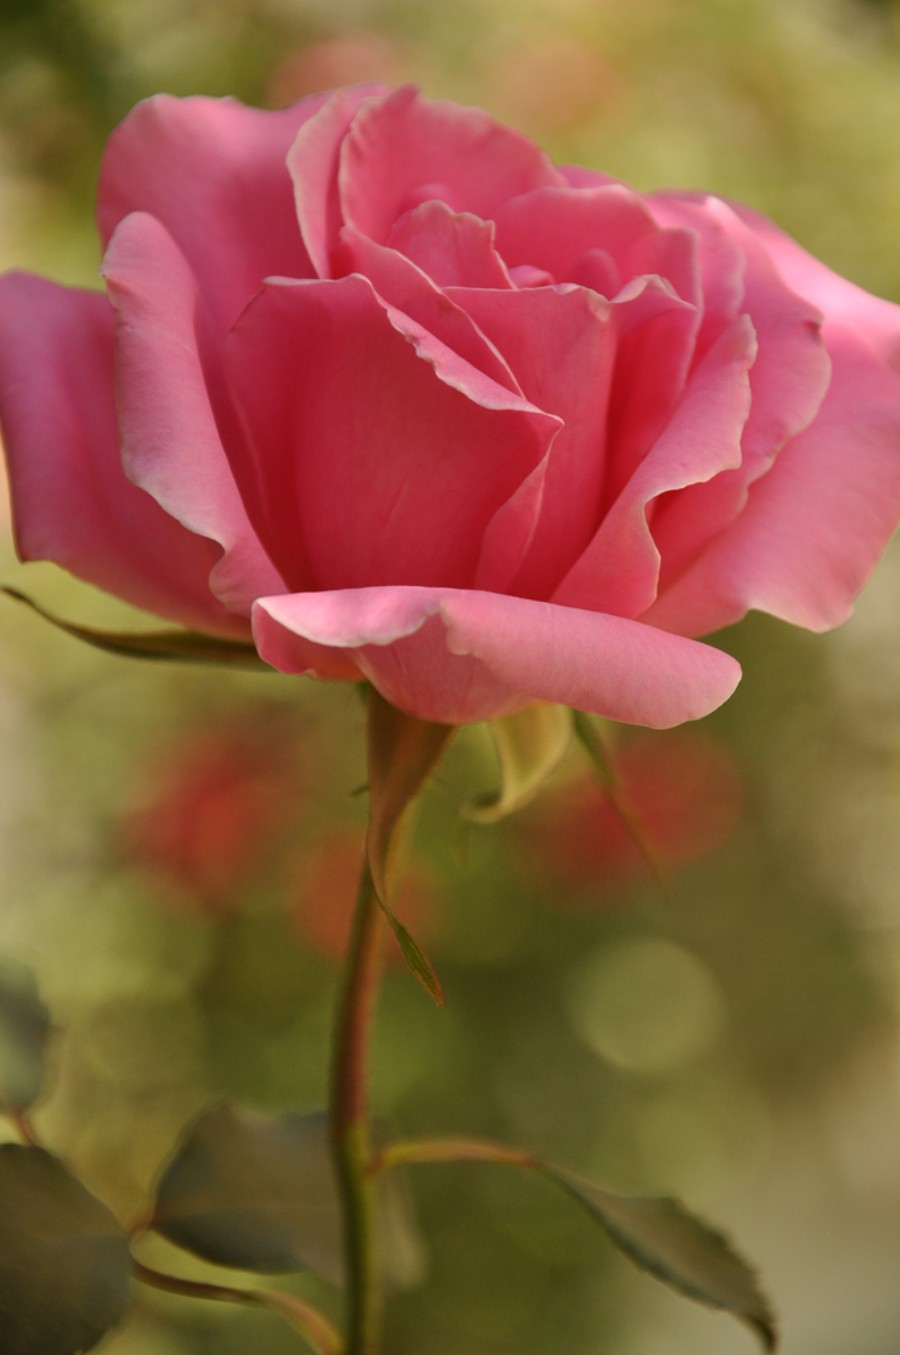 Most beautiful roses in the world 10 of the rarest and most most beautiful roses in the world for kids izmirmasajfo